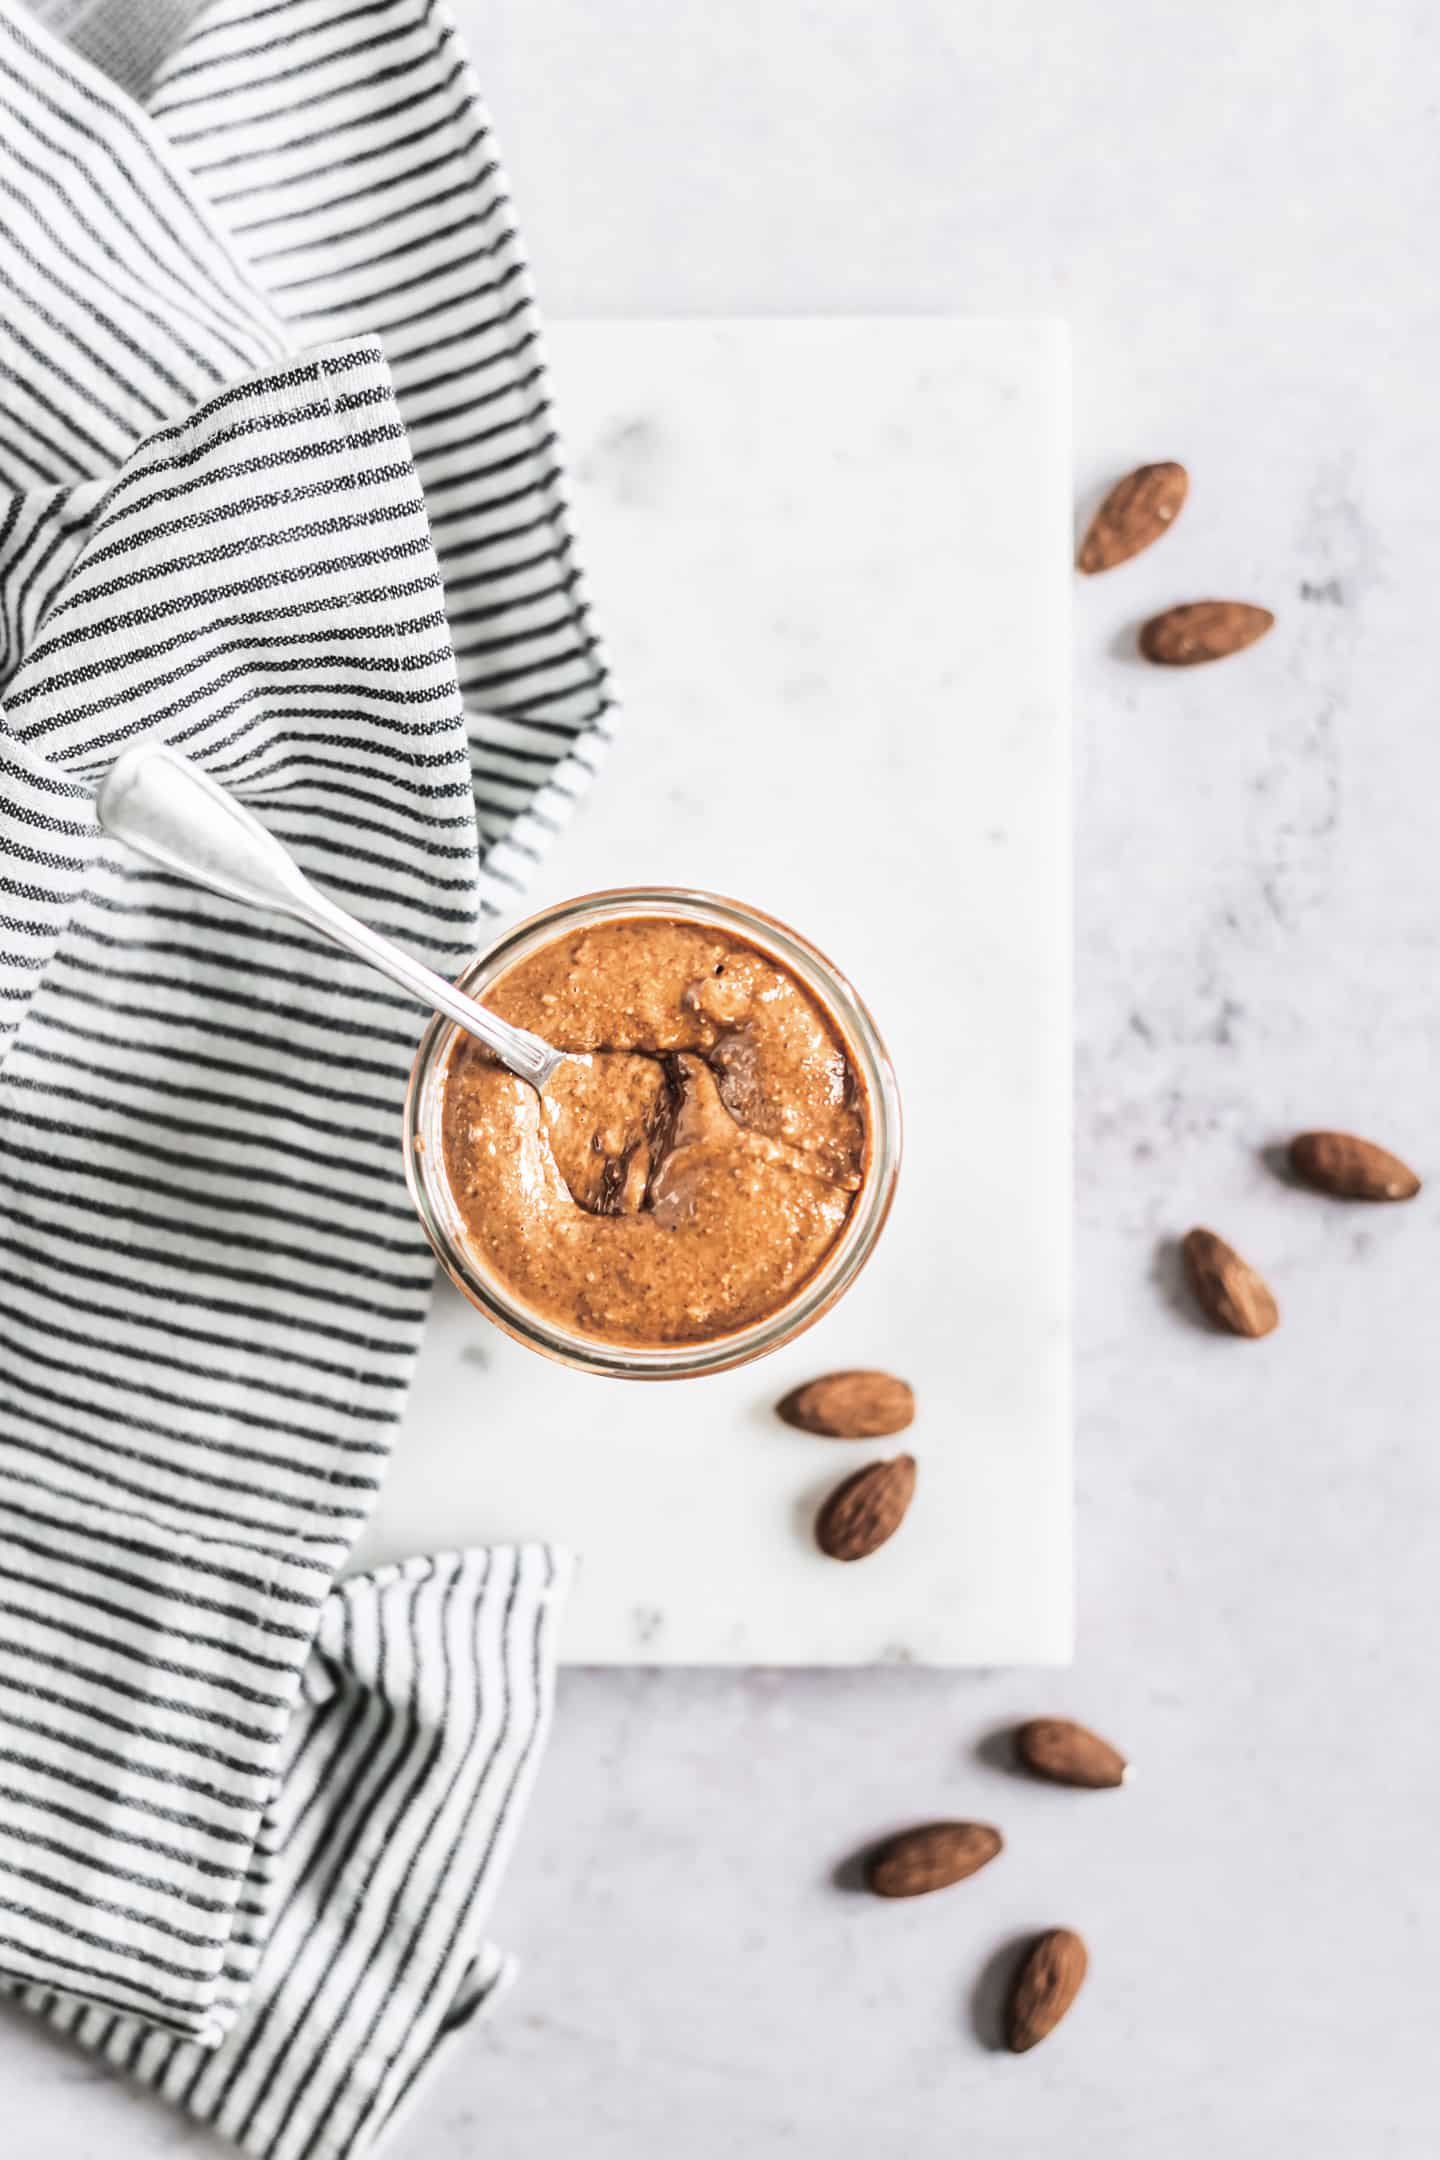 Almond butter homemade recipe